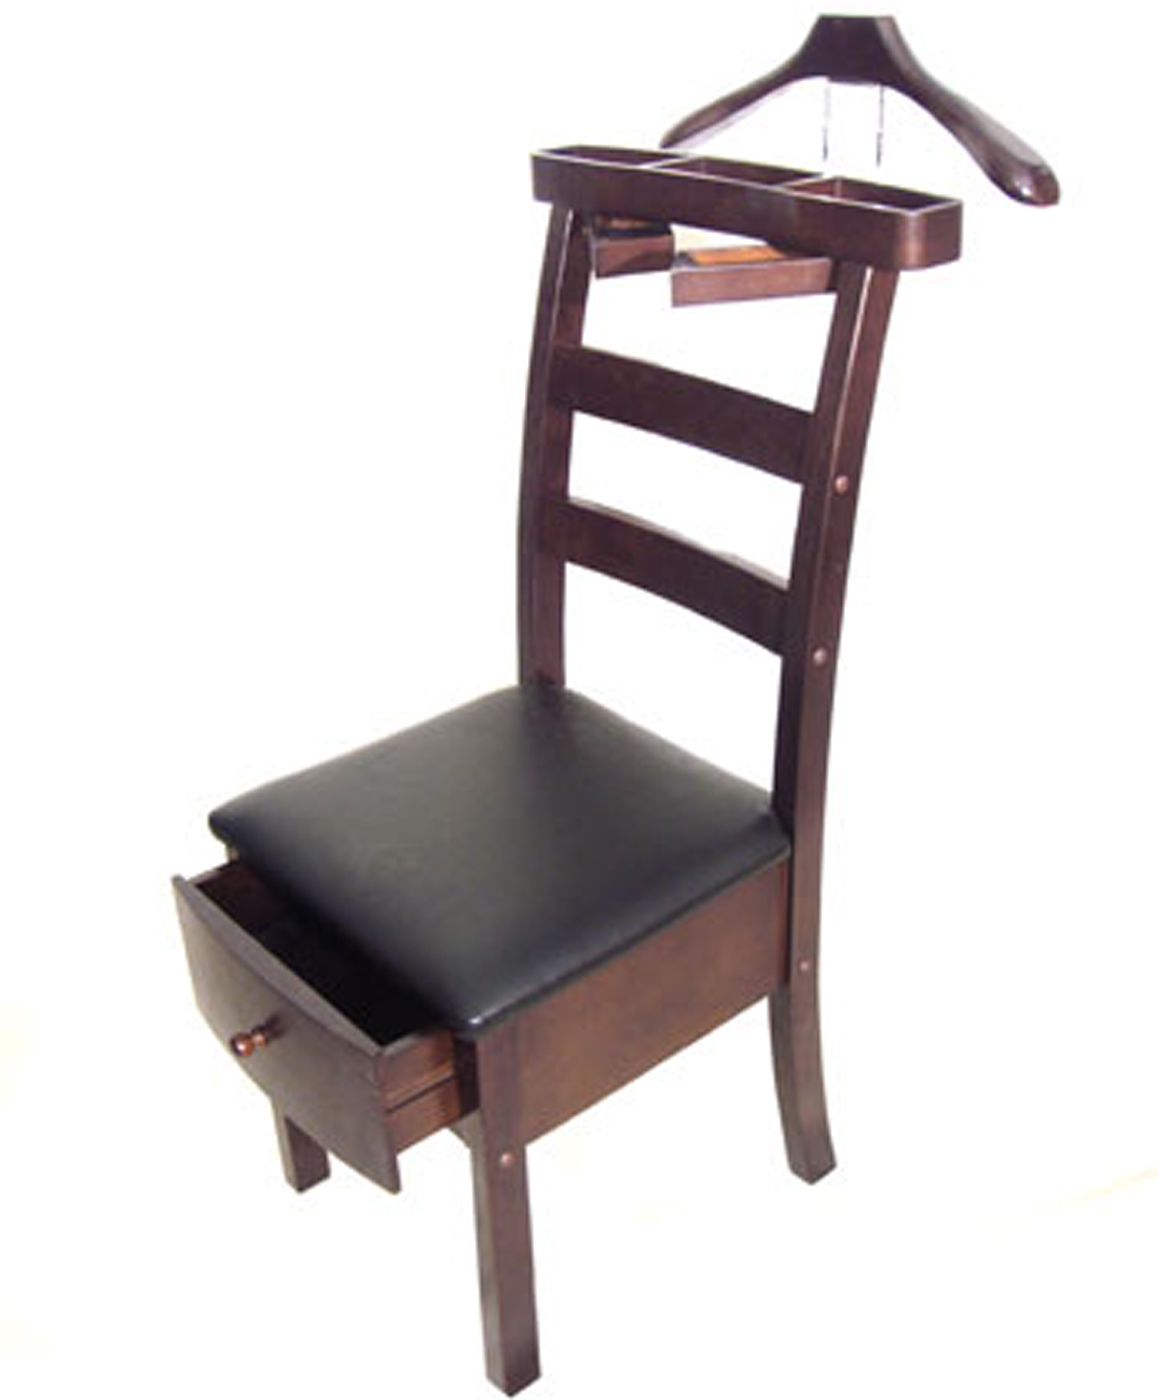 Mens Valet Chair Manhattan Chair Valet By Proman In Suit Valets